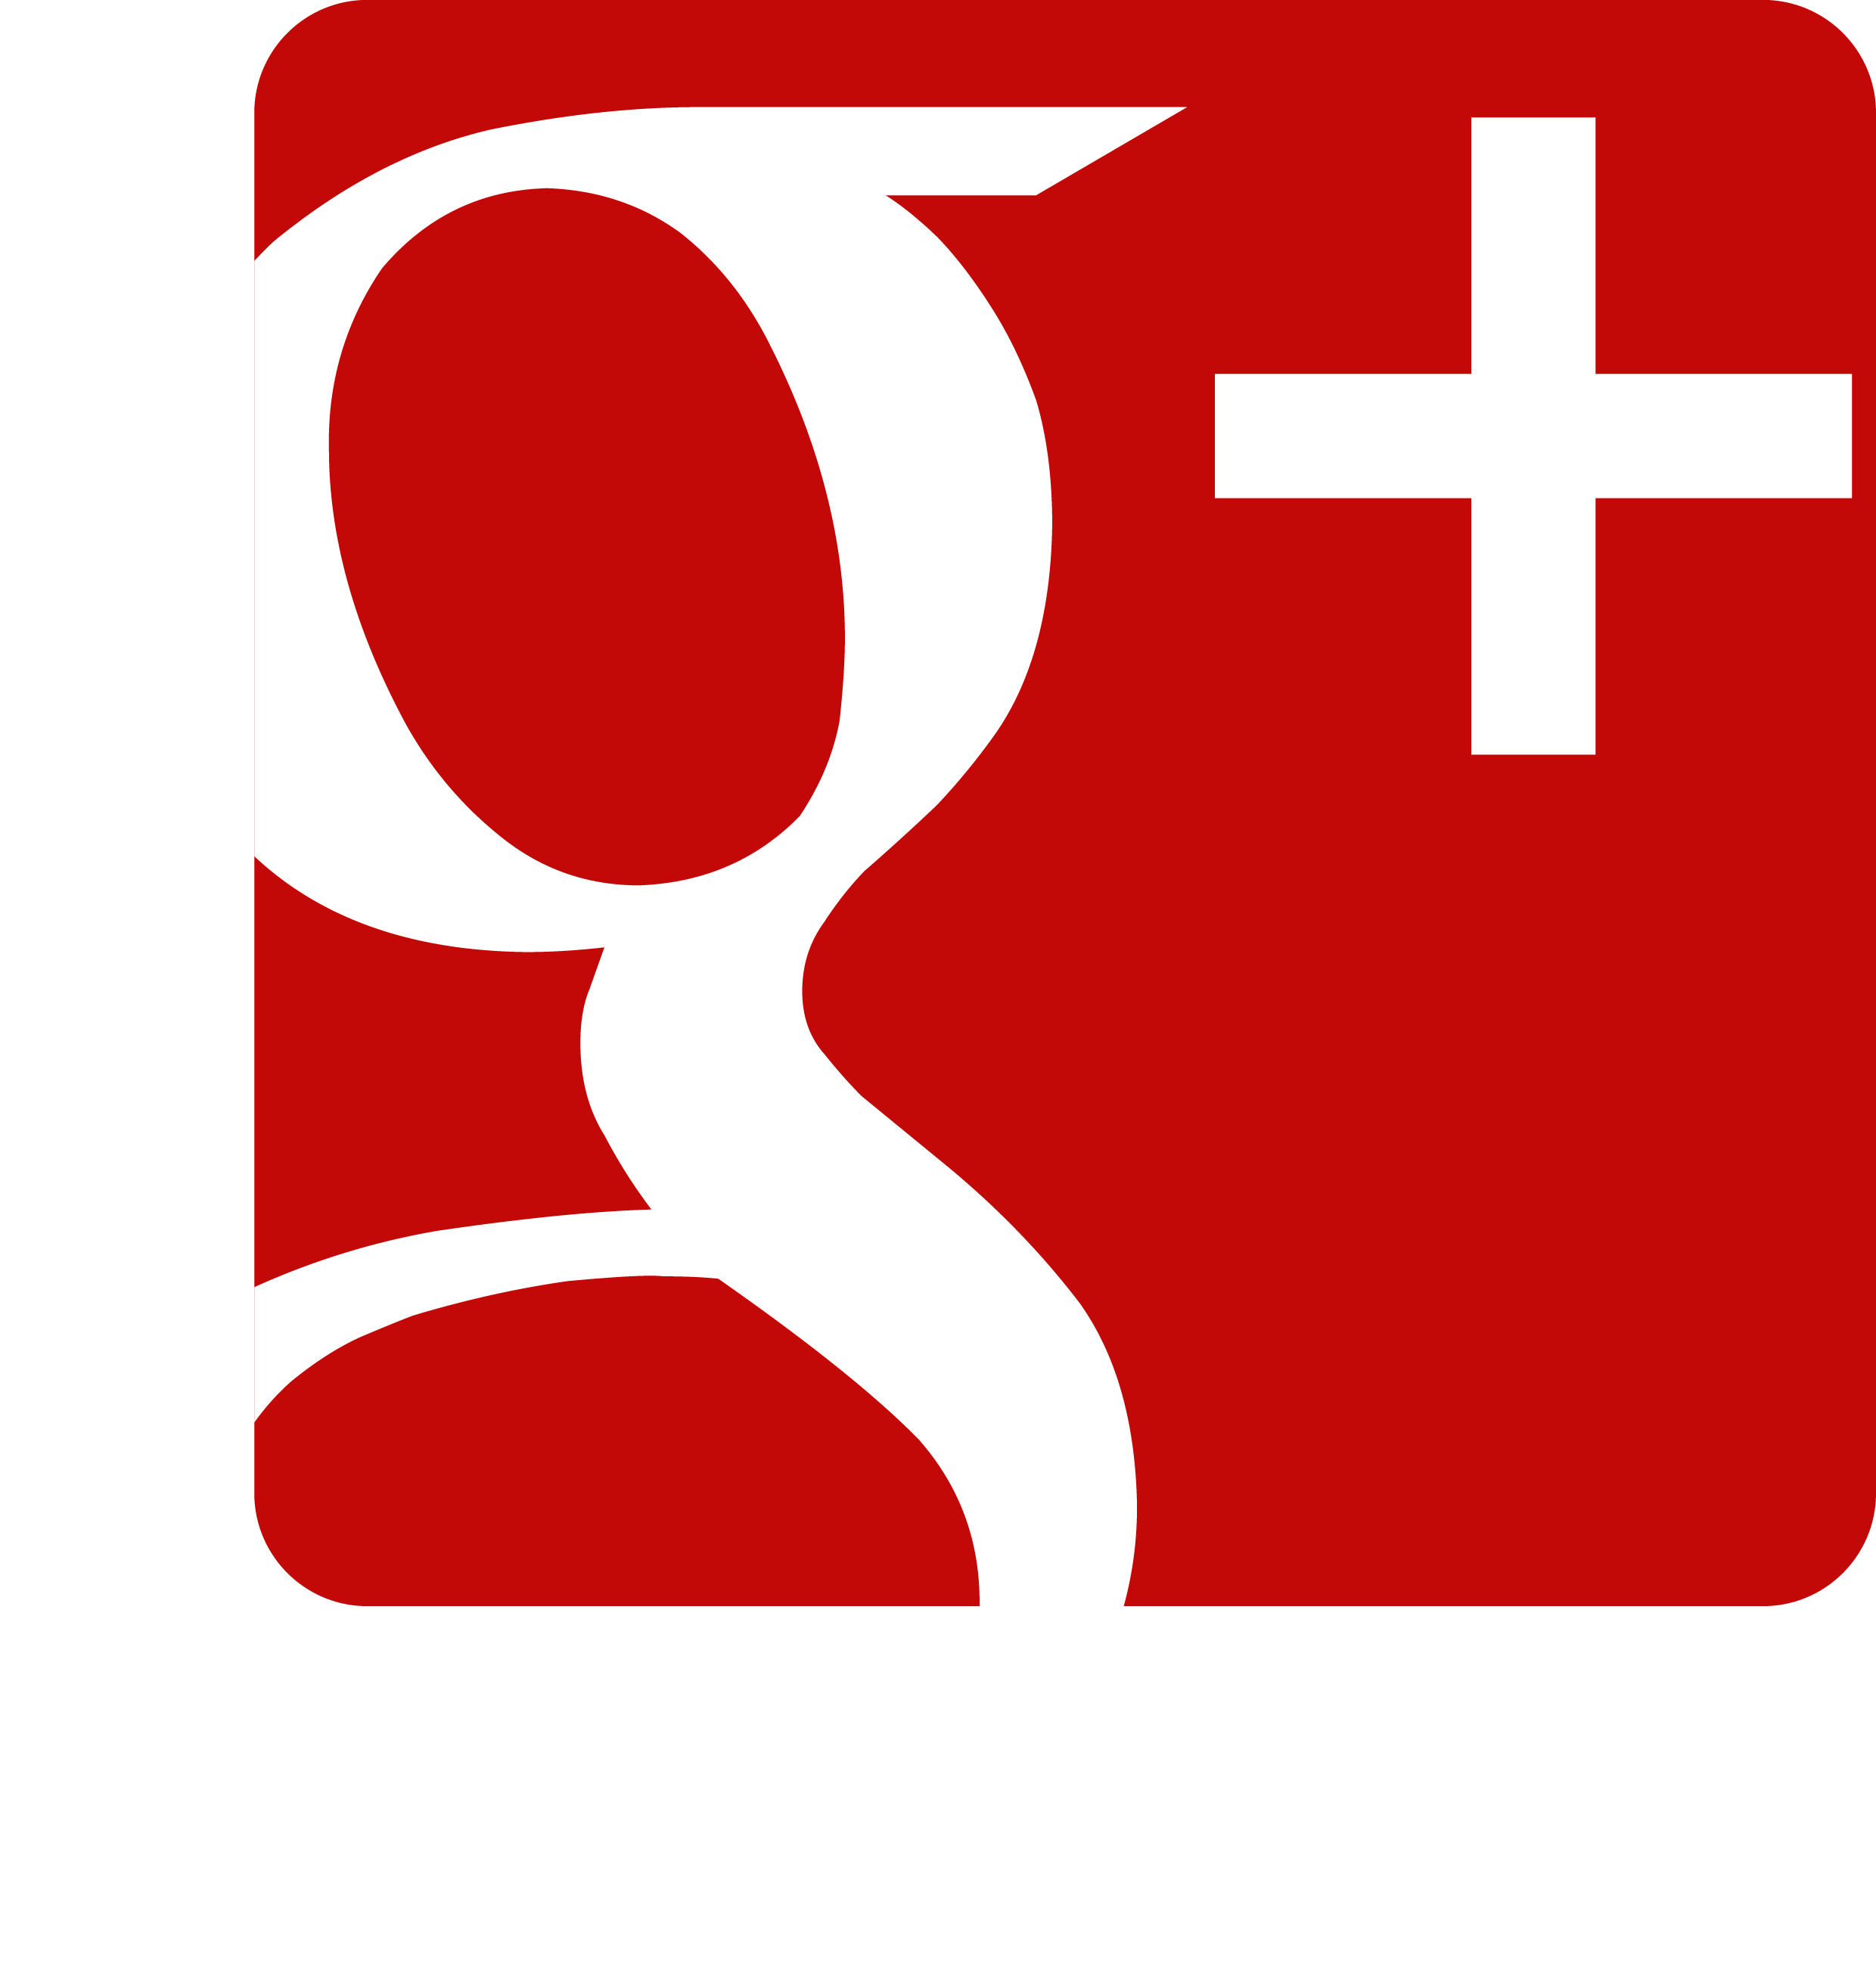 6 Google Plus Icon Transparent Images